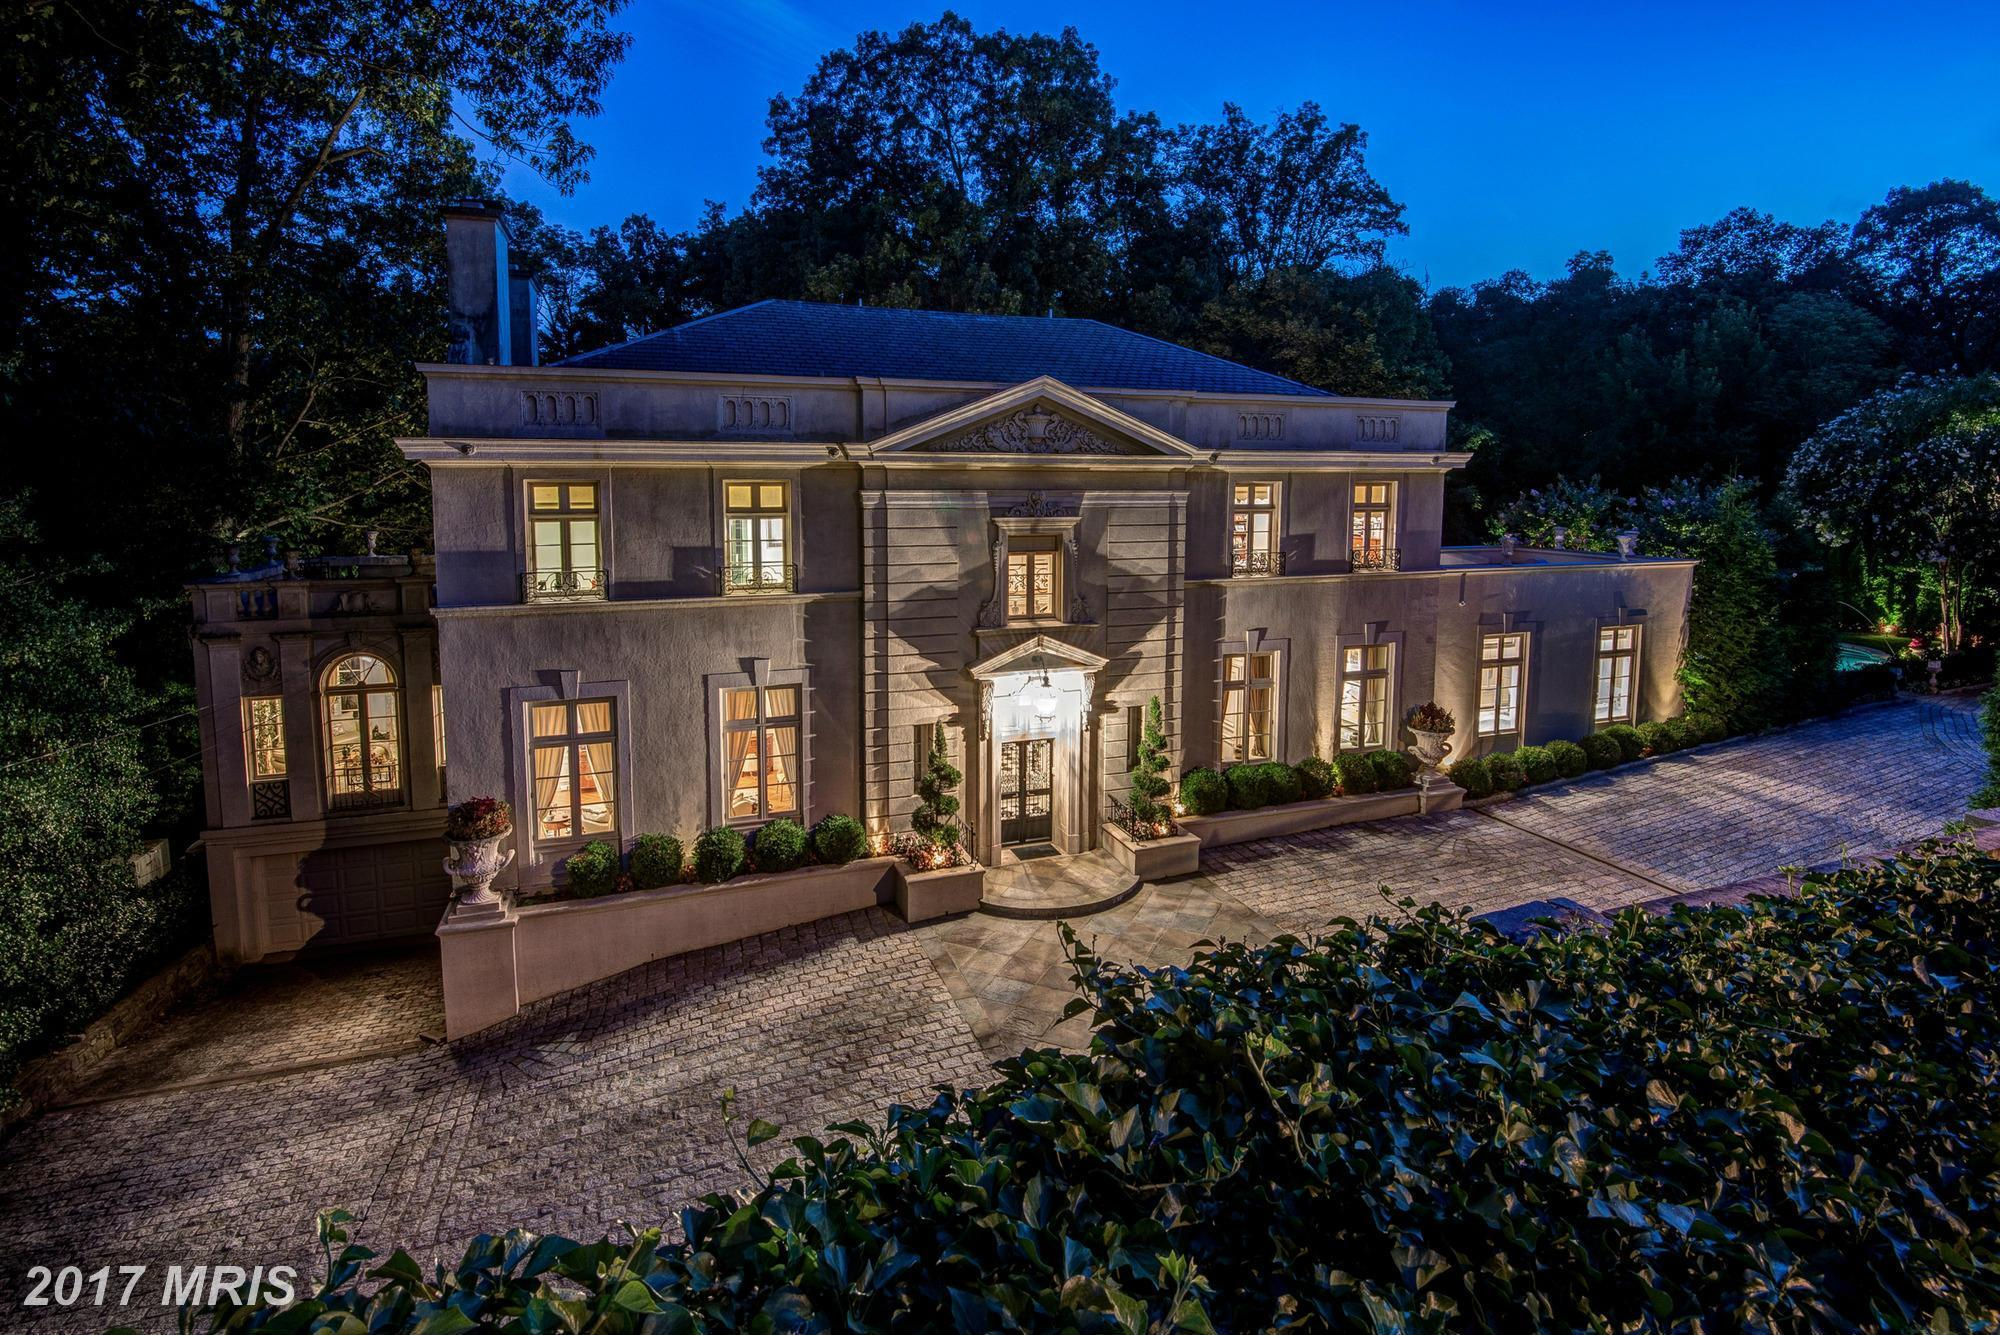 List price: $12,000,000 // Closing price: $10,750,000 // 7 bedrooms, 10 bathrooms // Built in 1927 // Beaux Arts style // Neighborhood: Cleveland Park // Listing agent: Charles Holzwarth of Washington Fine Properties // Selling agent:{&amp;nbsp;}Robert Hryniewicki of Washington Fine Properties (Image: Courtesy Bright MLS)<br><p></p>